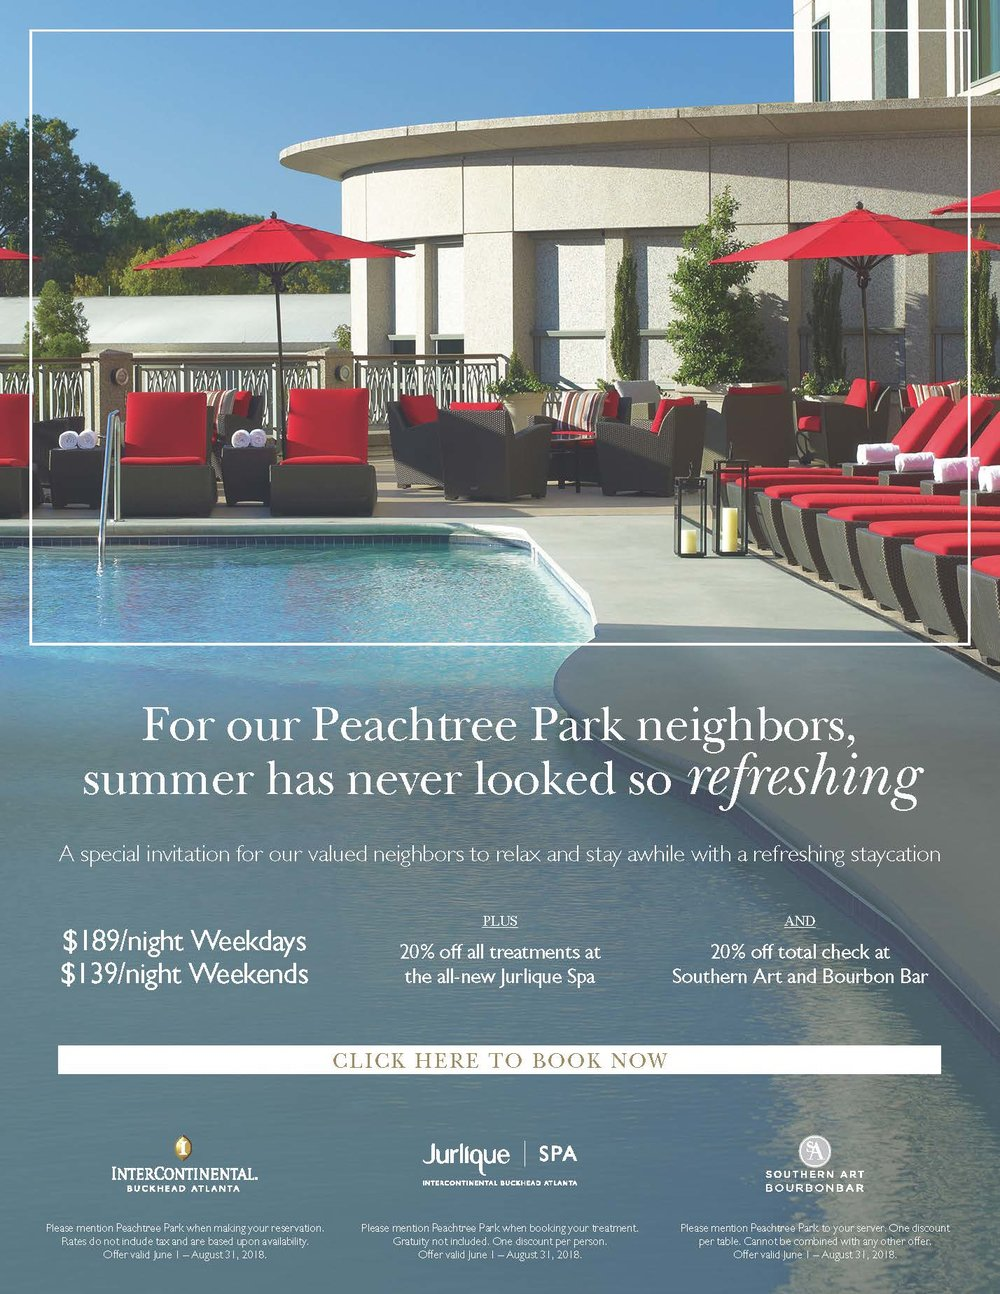 InterContinental Buckhead Atlanta_Peachtree Park Summer 2018 Promotion.jpg